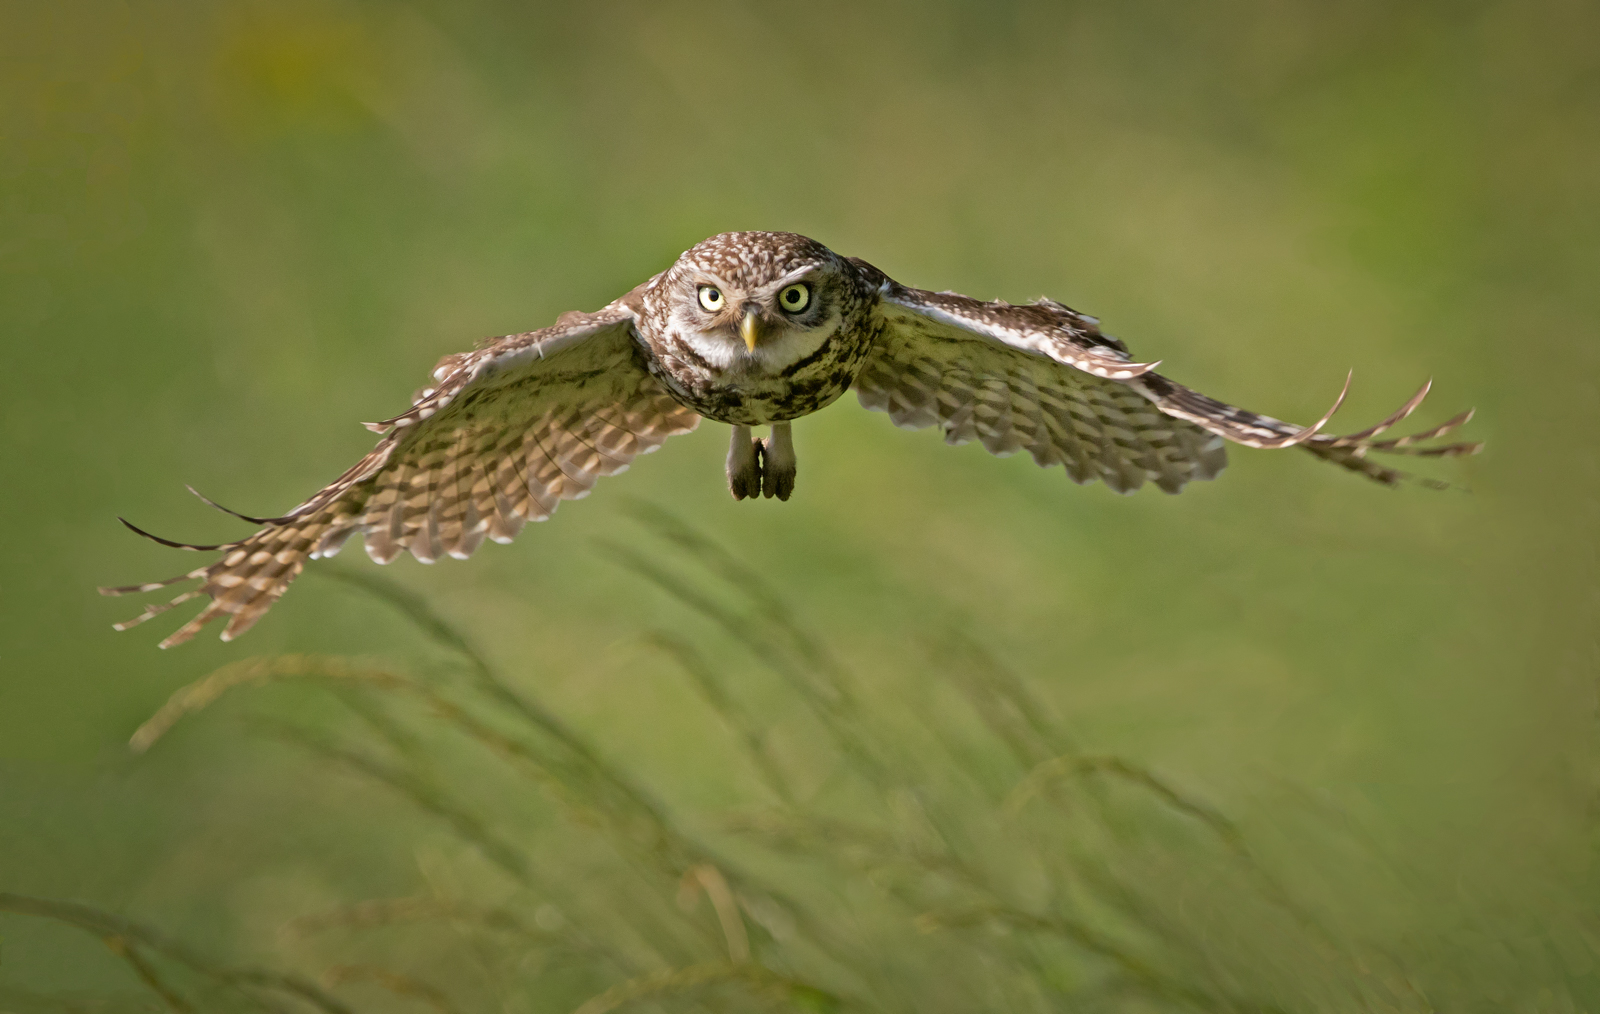 Richard Towell Wild Little Owl